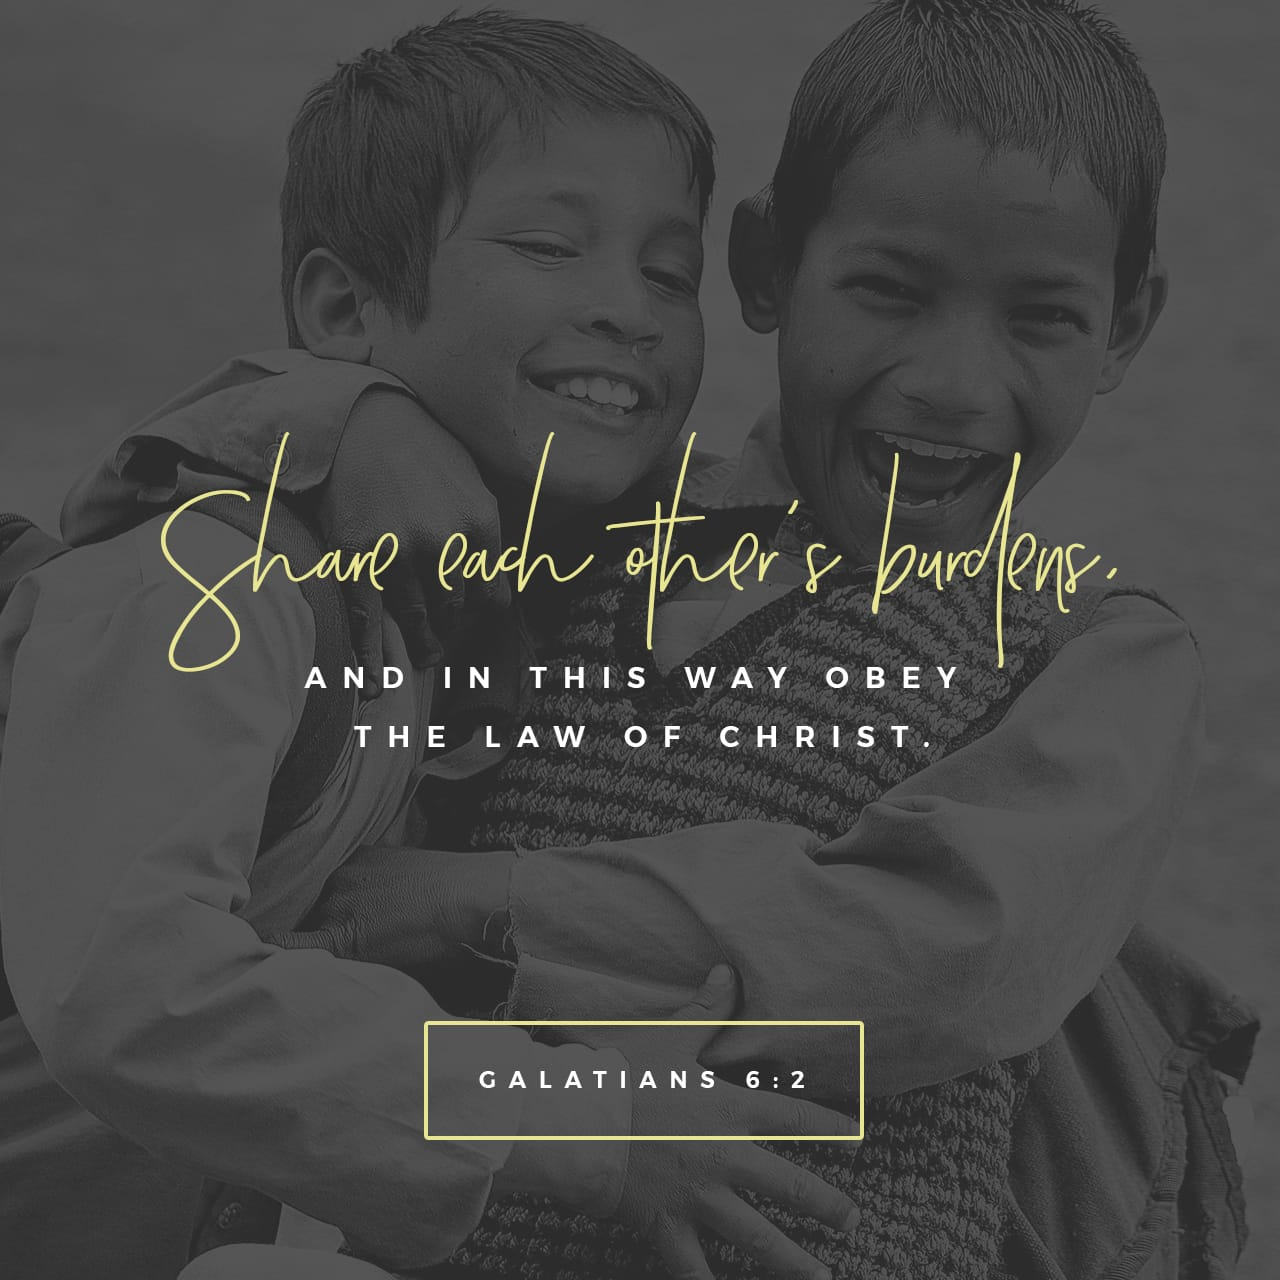 Galatians 6:2 Bear ye one another's burdens, and so fulfil the law of Christ. | King James Version (KJV)